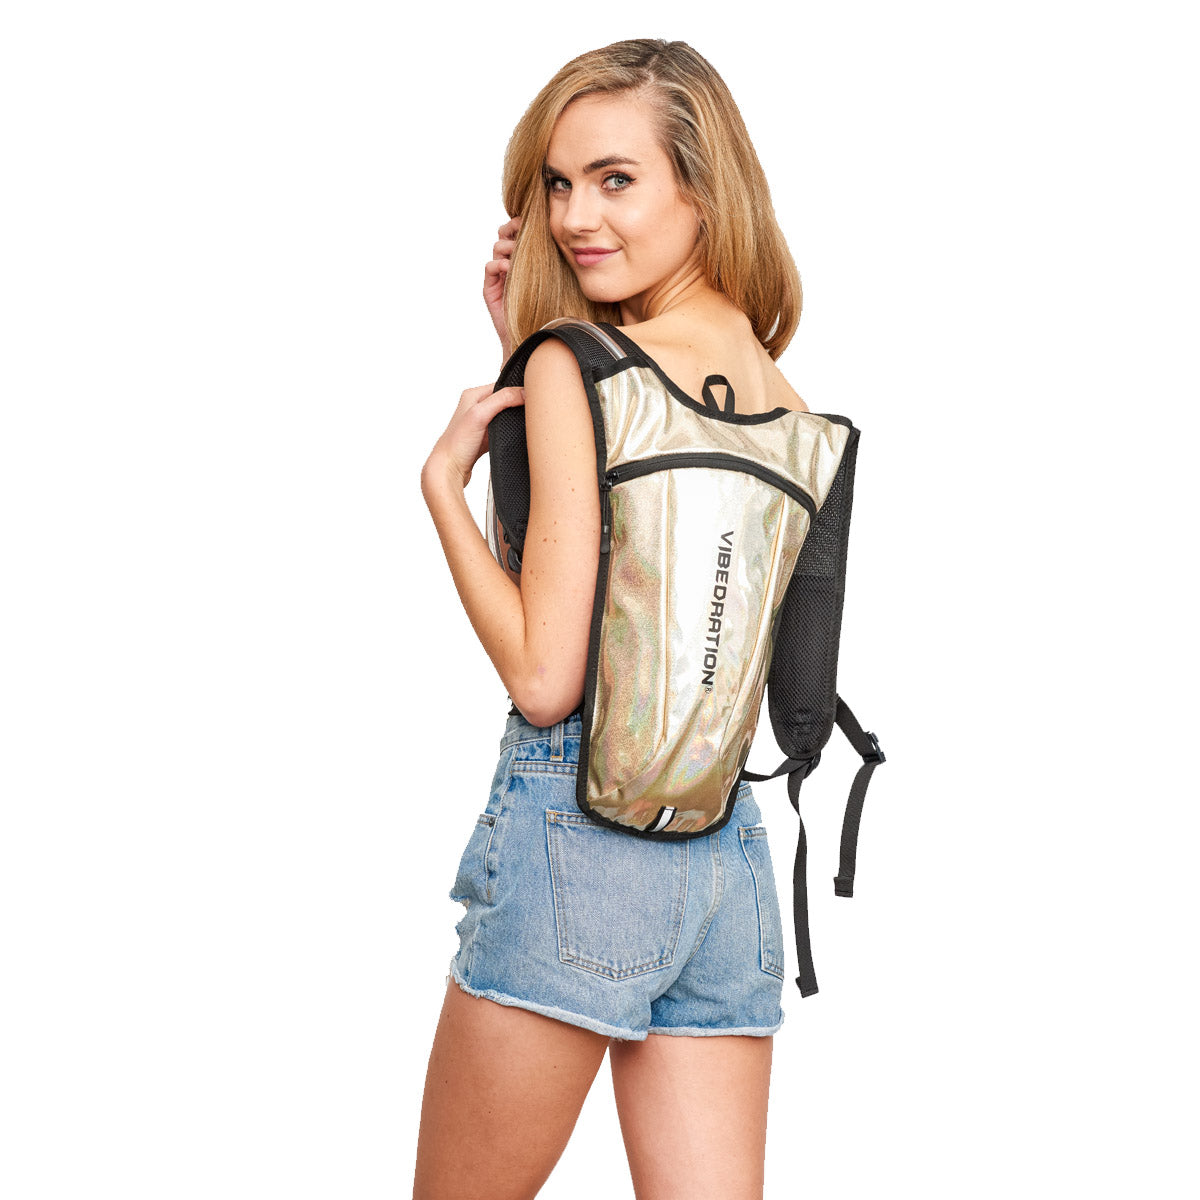 girl wearing champagne luxe hydration pack for raves and music festivals